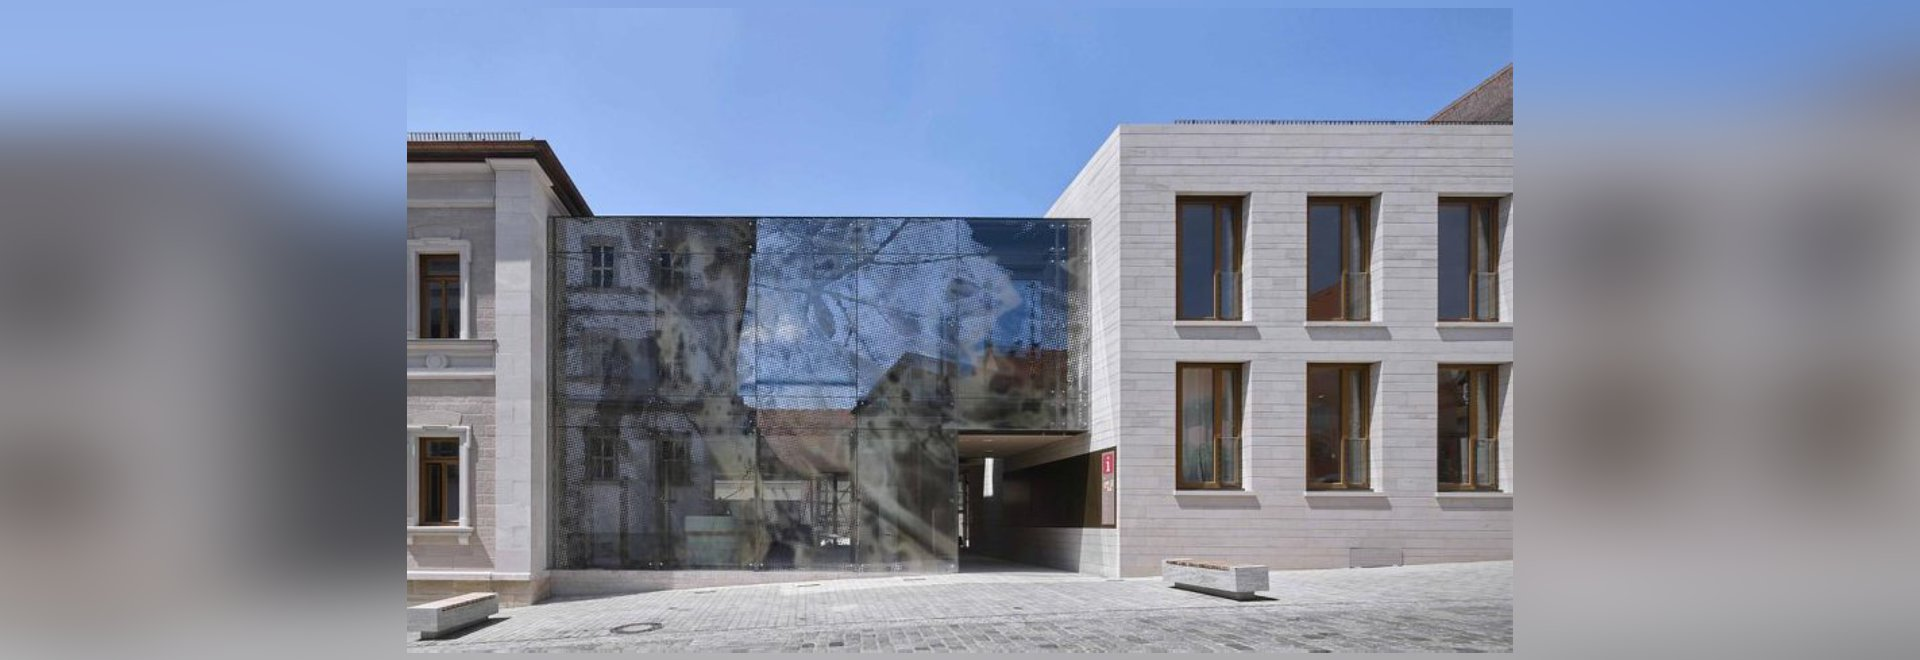 reiner john links historic building to new extension with glass façade